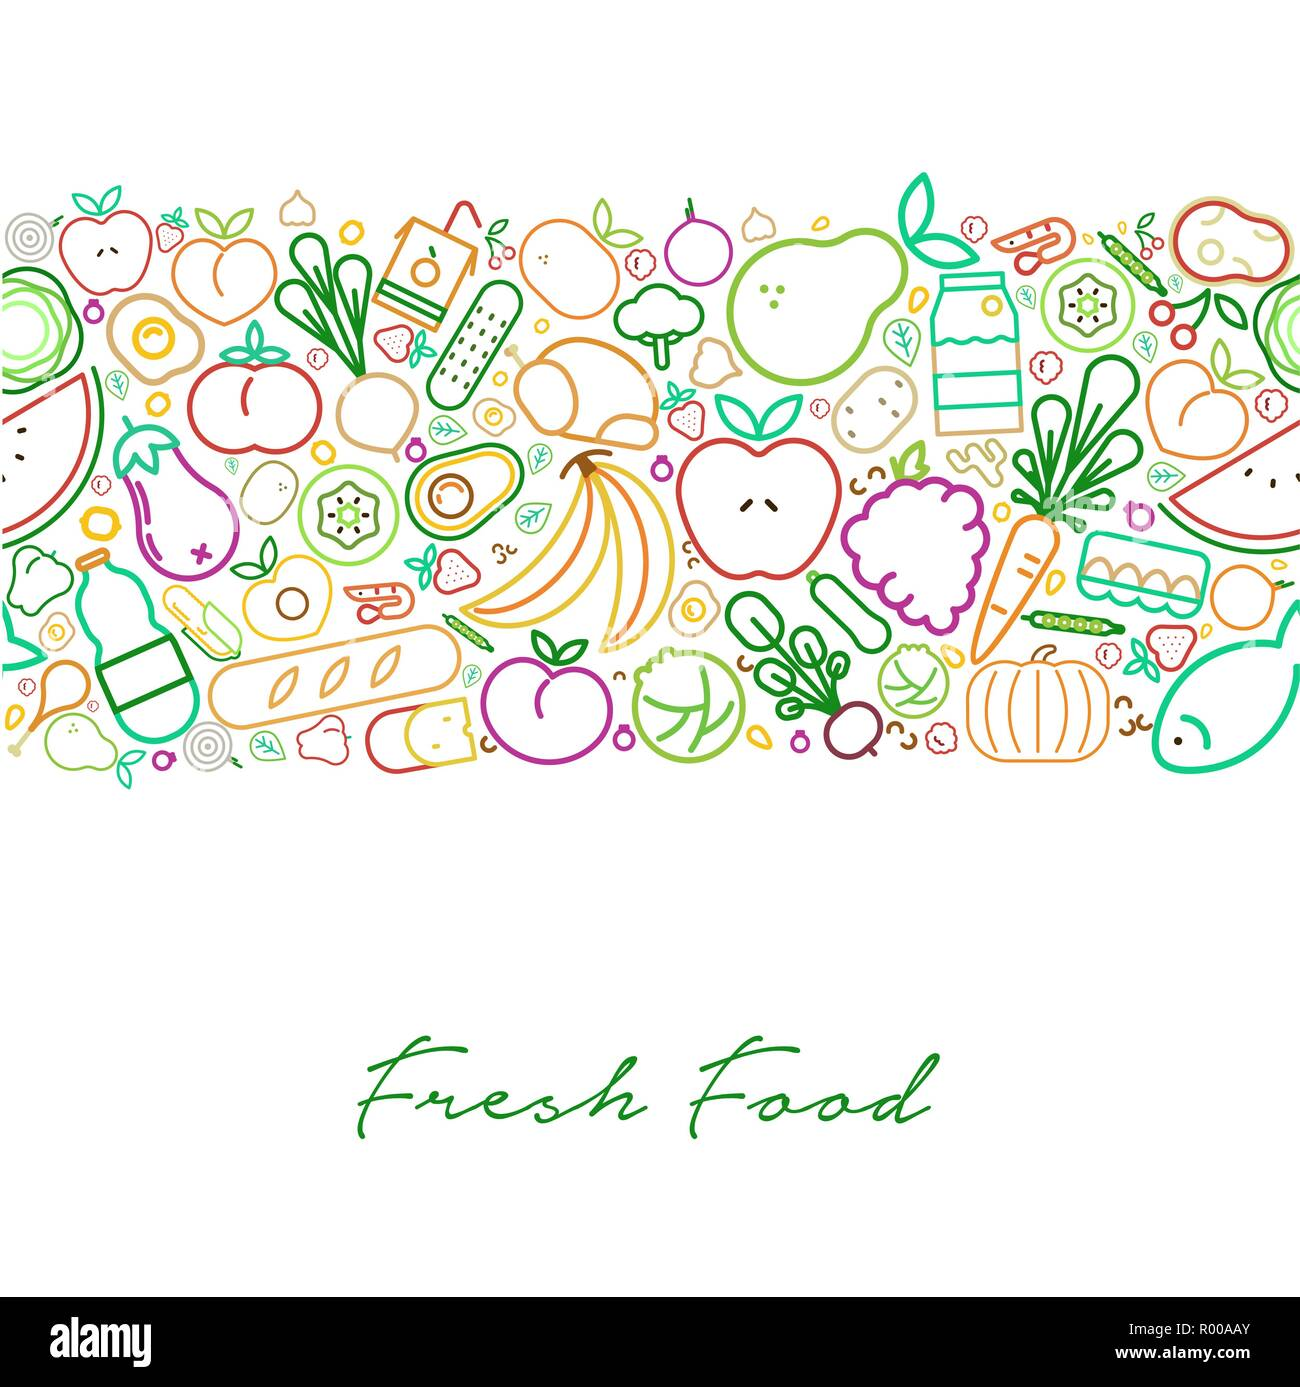 Fresh Food Illustration Background For Nutrition And Healthy Diet With Colorful Outline Style Icons Restaurant Menu Design Background Raw Gourmet Sty Stock Vector Image Art Alamy